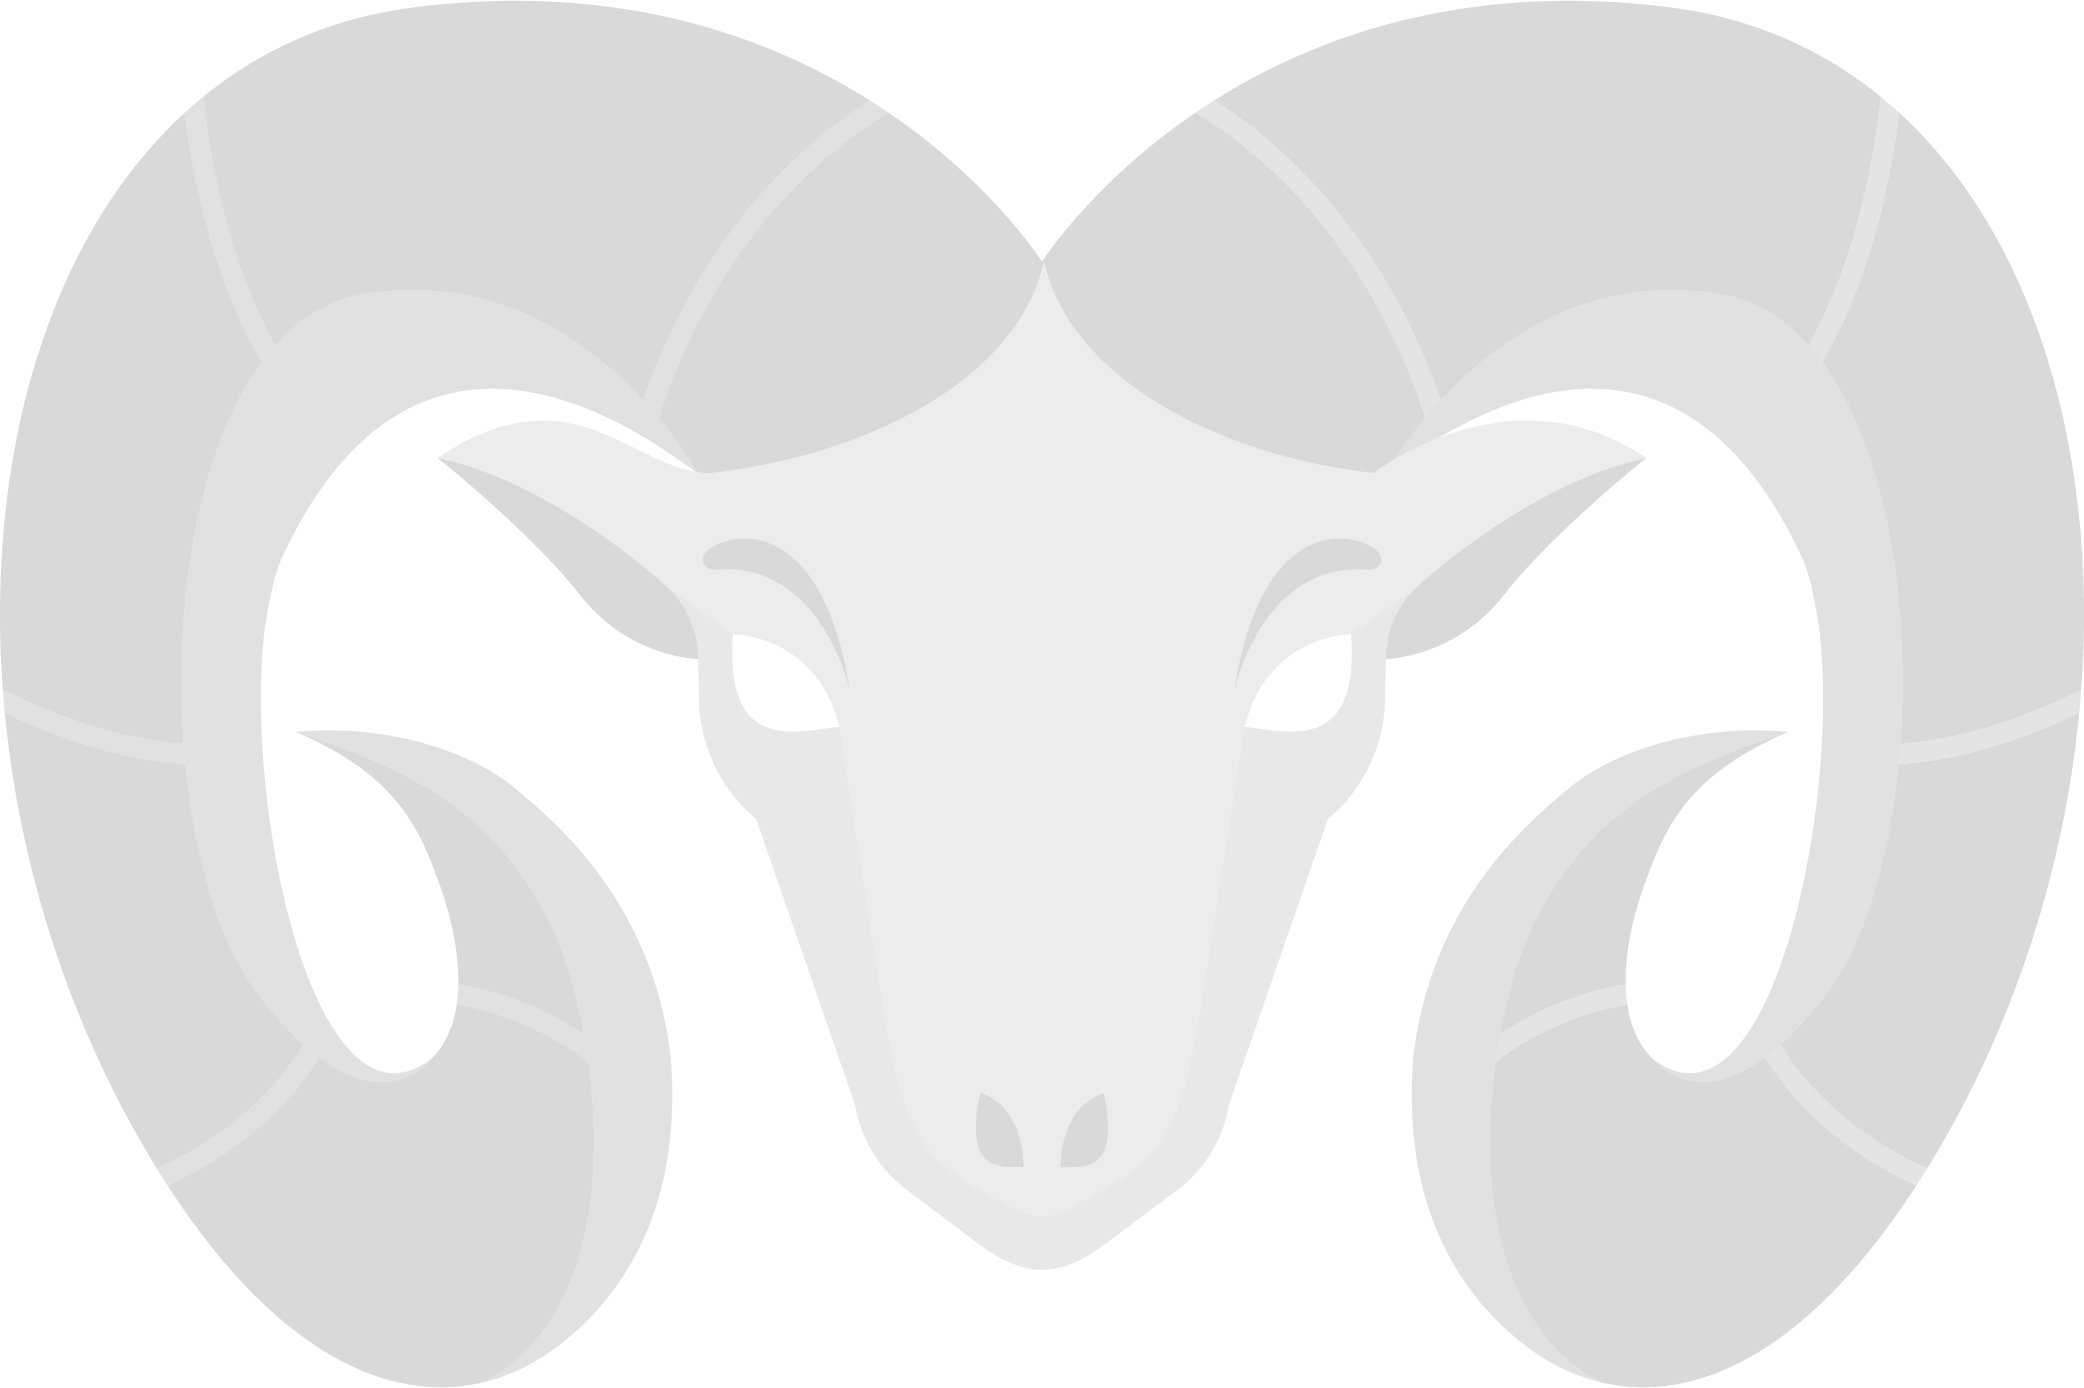 ARIES | By Lab Viso